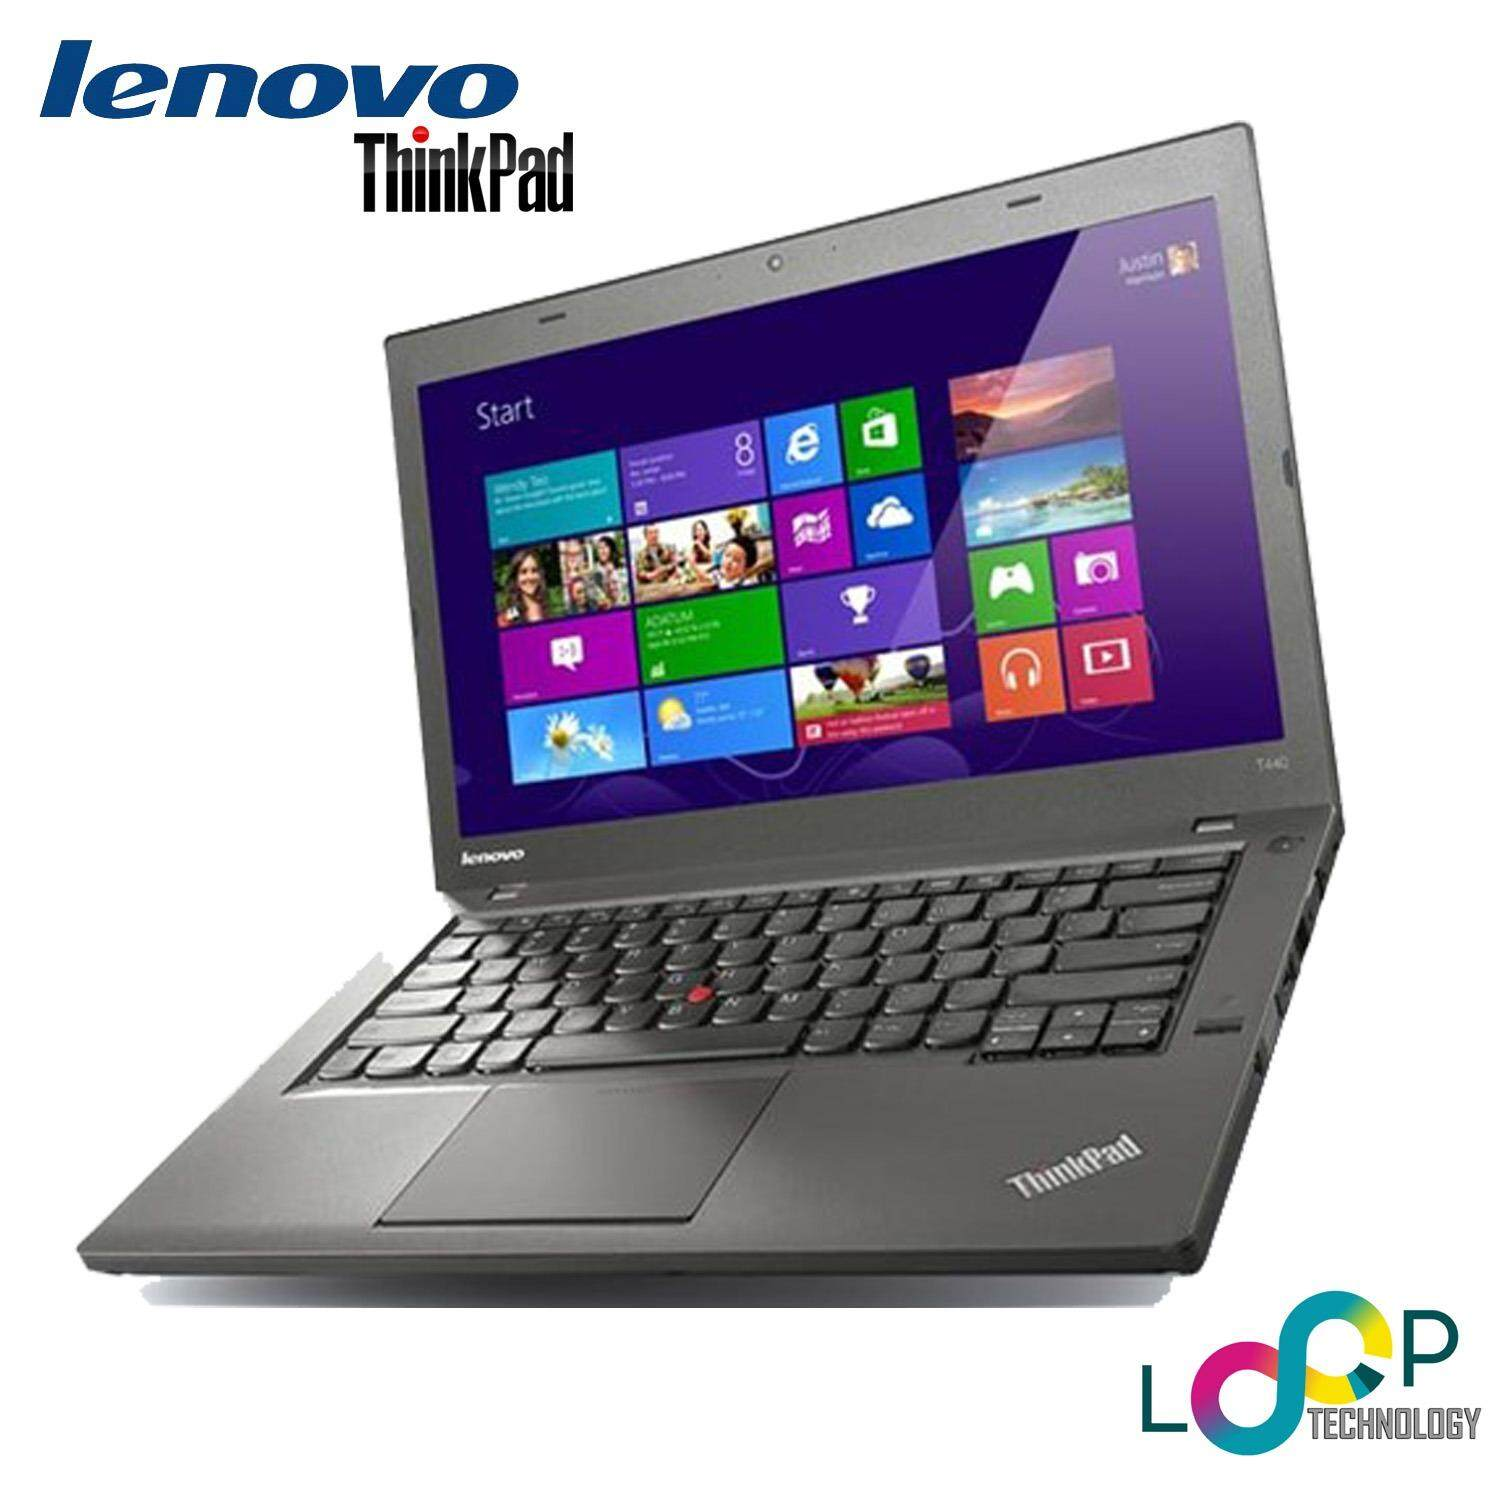 LENOVO ThinkPad X240 - Intel Core i5-4300U - 4GB RAM - 500GB HDD - WINDOWS 7 PRO 64 BIT - FREE GIFT ---> EXTERNAL DVD-RW / LENOVO CARRY CASE AND 2 BATTRIES Malaysia